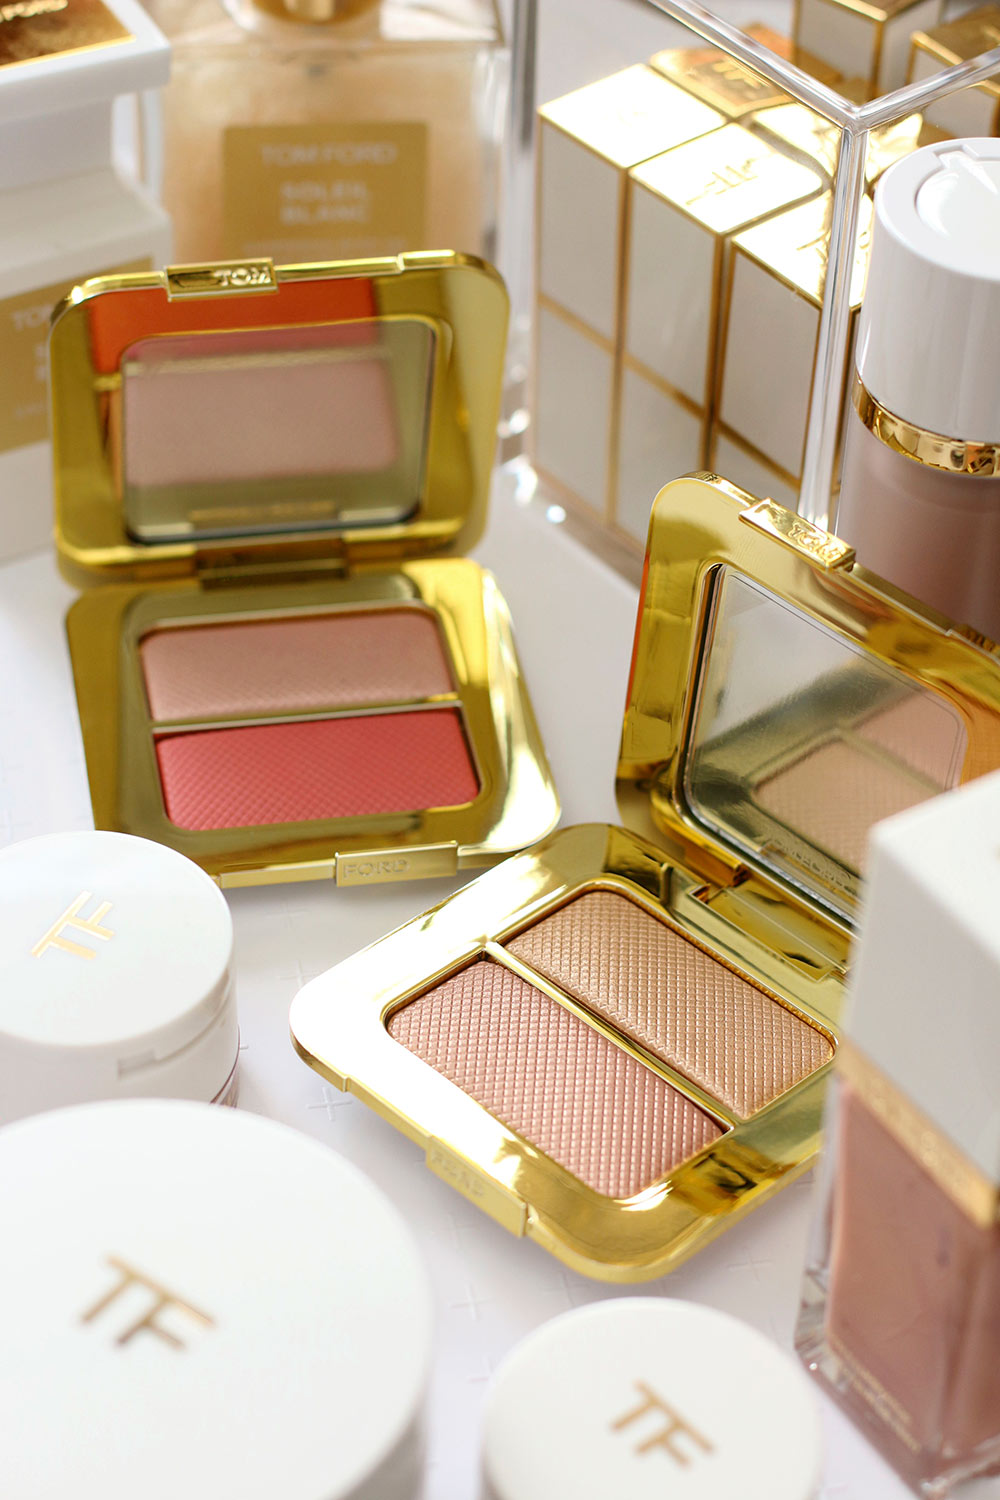 tom ford paradise lust reflects gilt